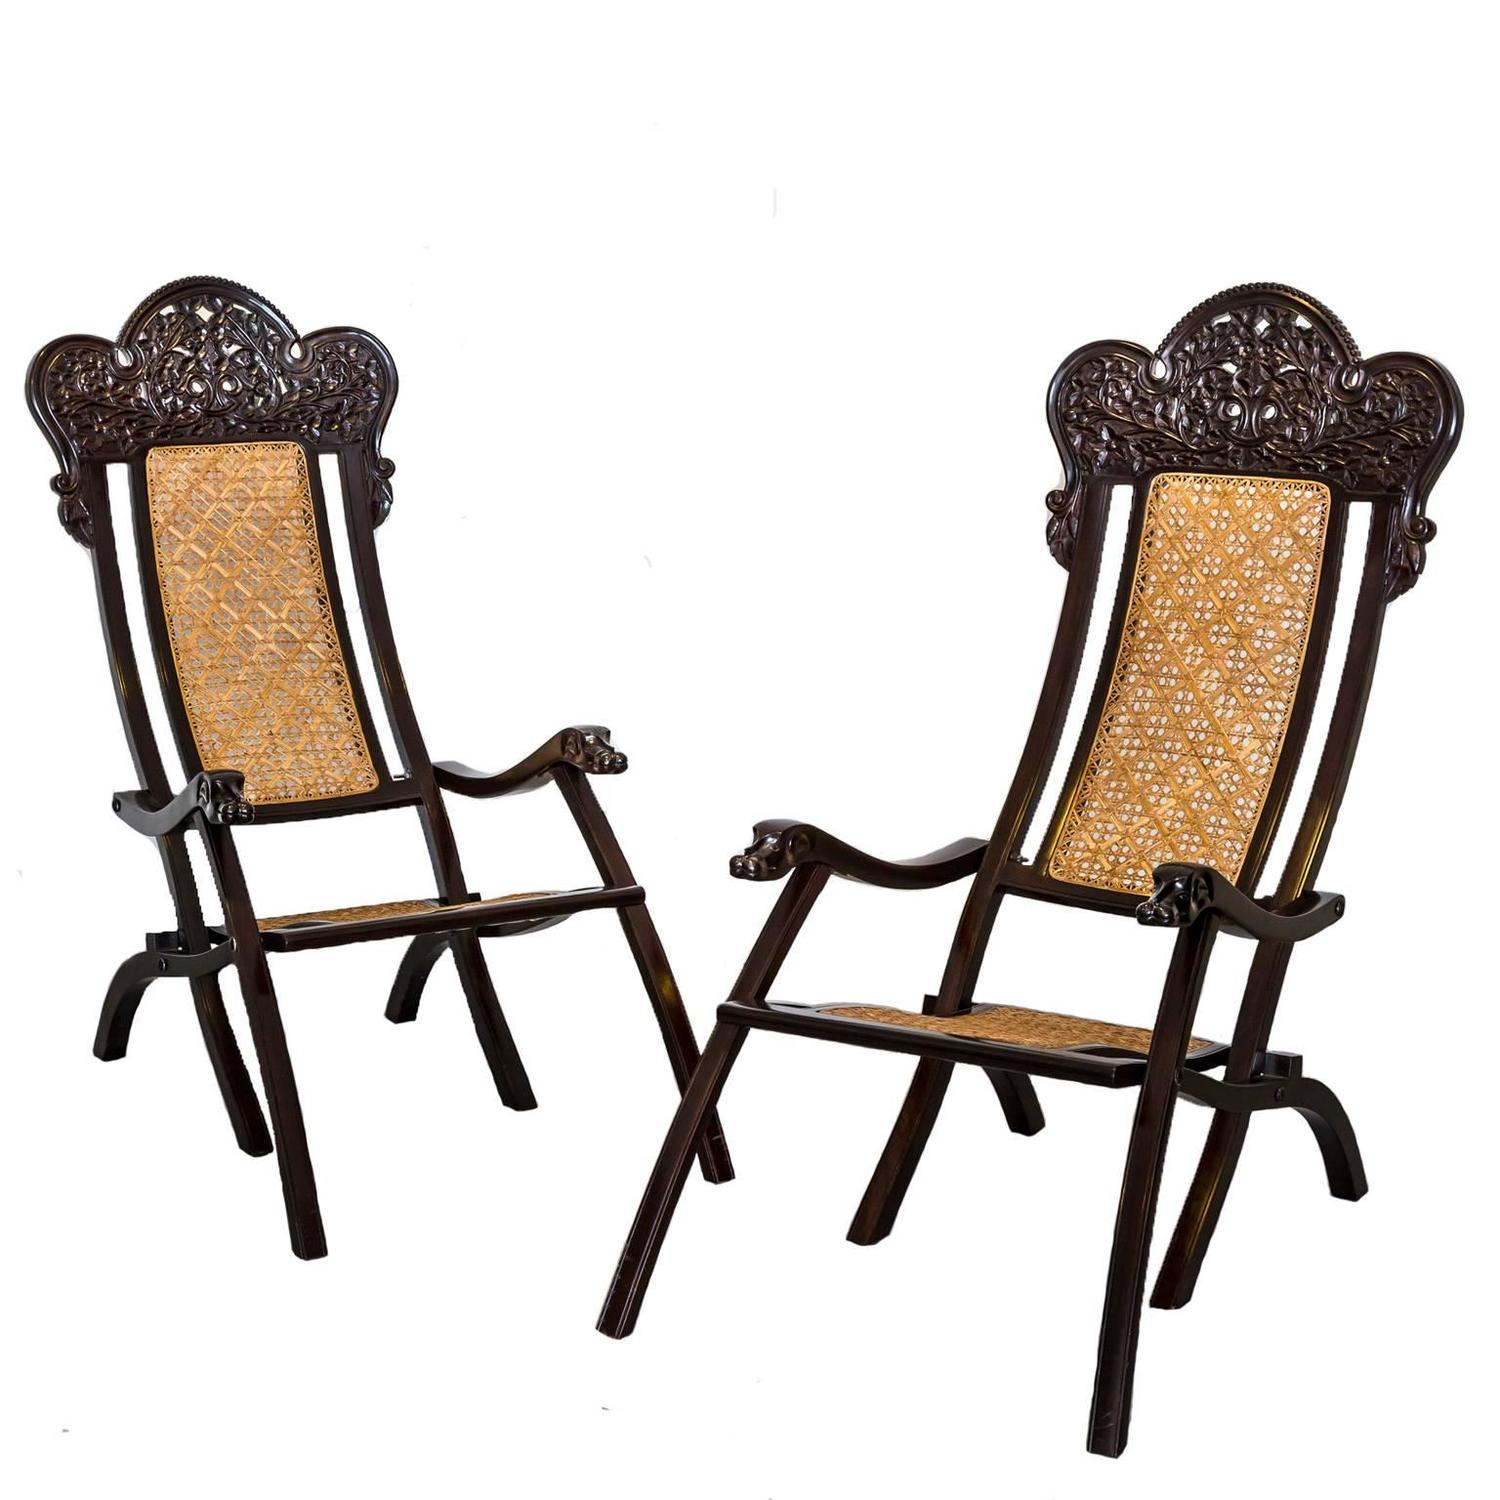 This pair of large burmese arm chairs is no longer available - Pair Of Indo Portuguese Or Portuguese Colonial Rosewood Folding Chairs For Sale At 1stdibs